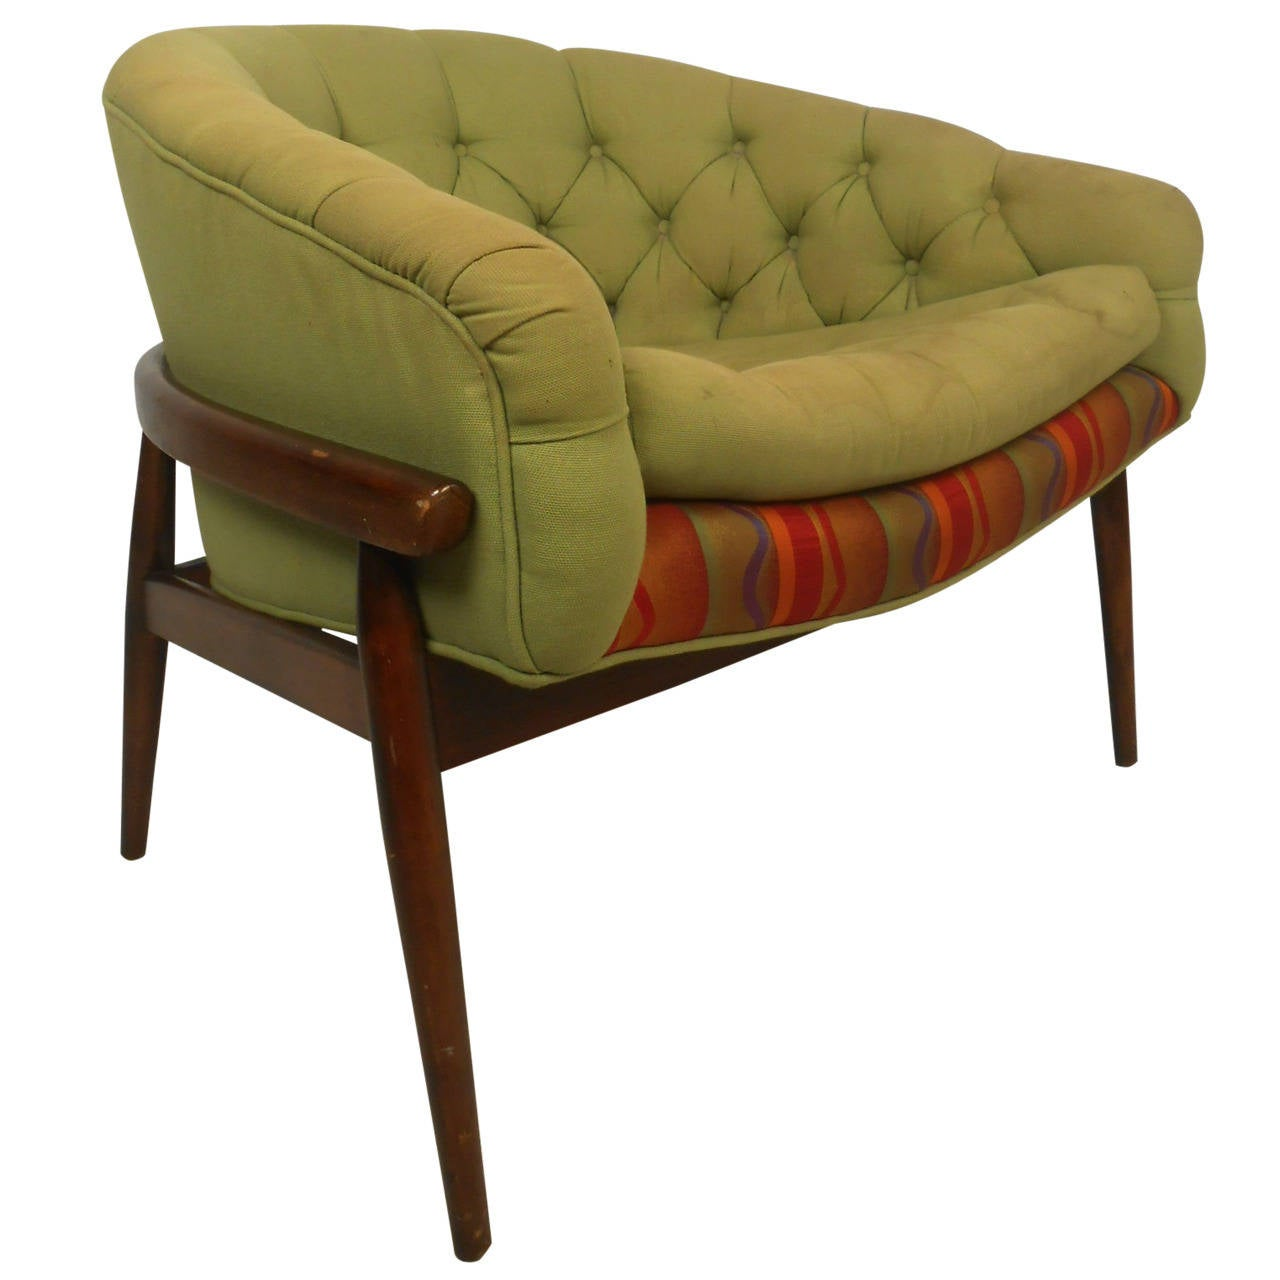 Milo Baughman Style Low Lounge Chair For Sale at 1stdibs